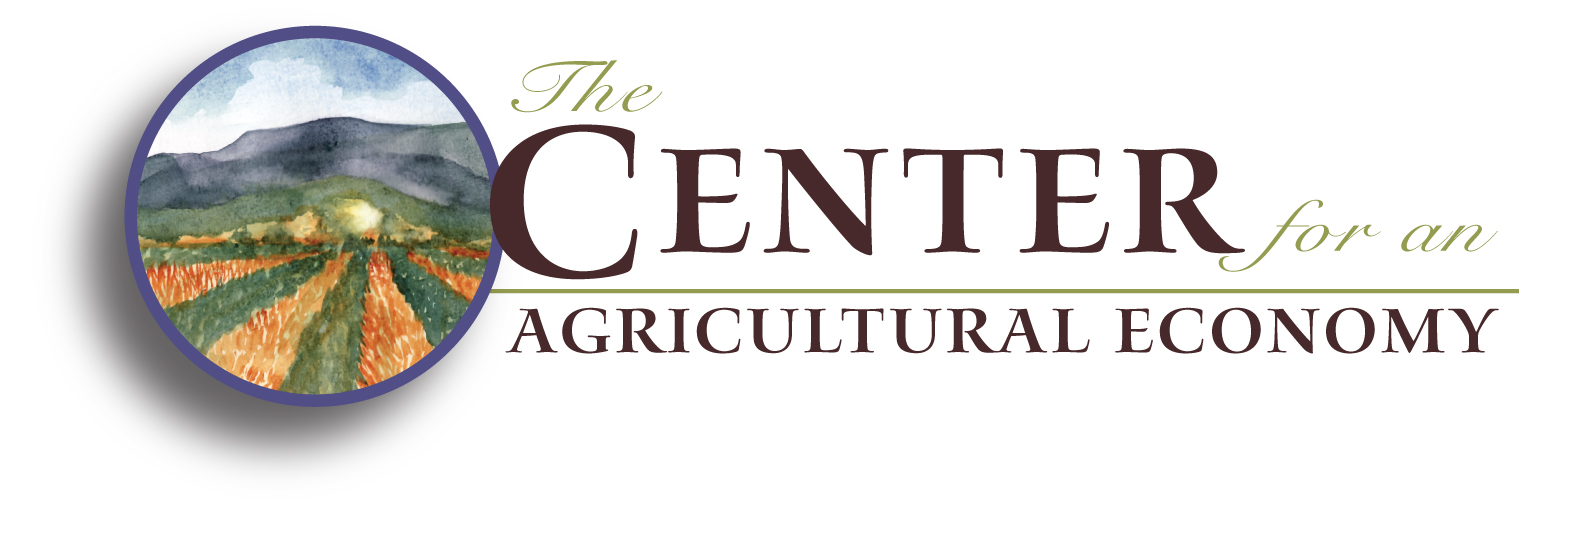 The Center for an Agricultural Economy